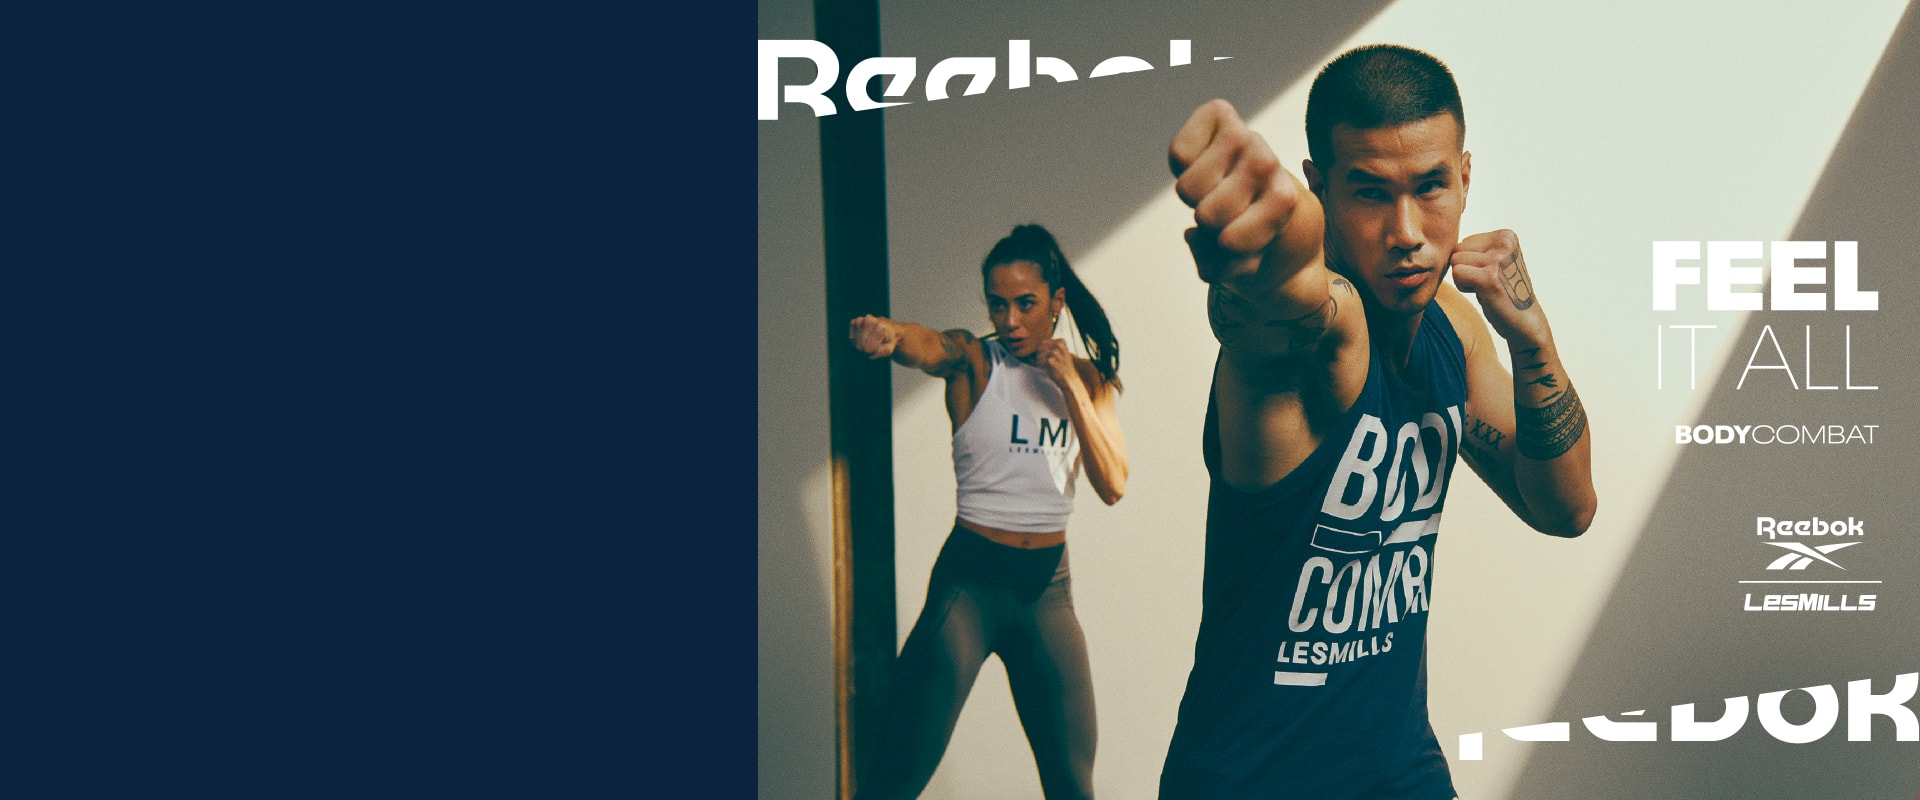 Reebok LES MILLS 2020 Spring/Summer New collection & Campaign